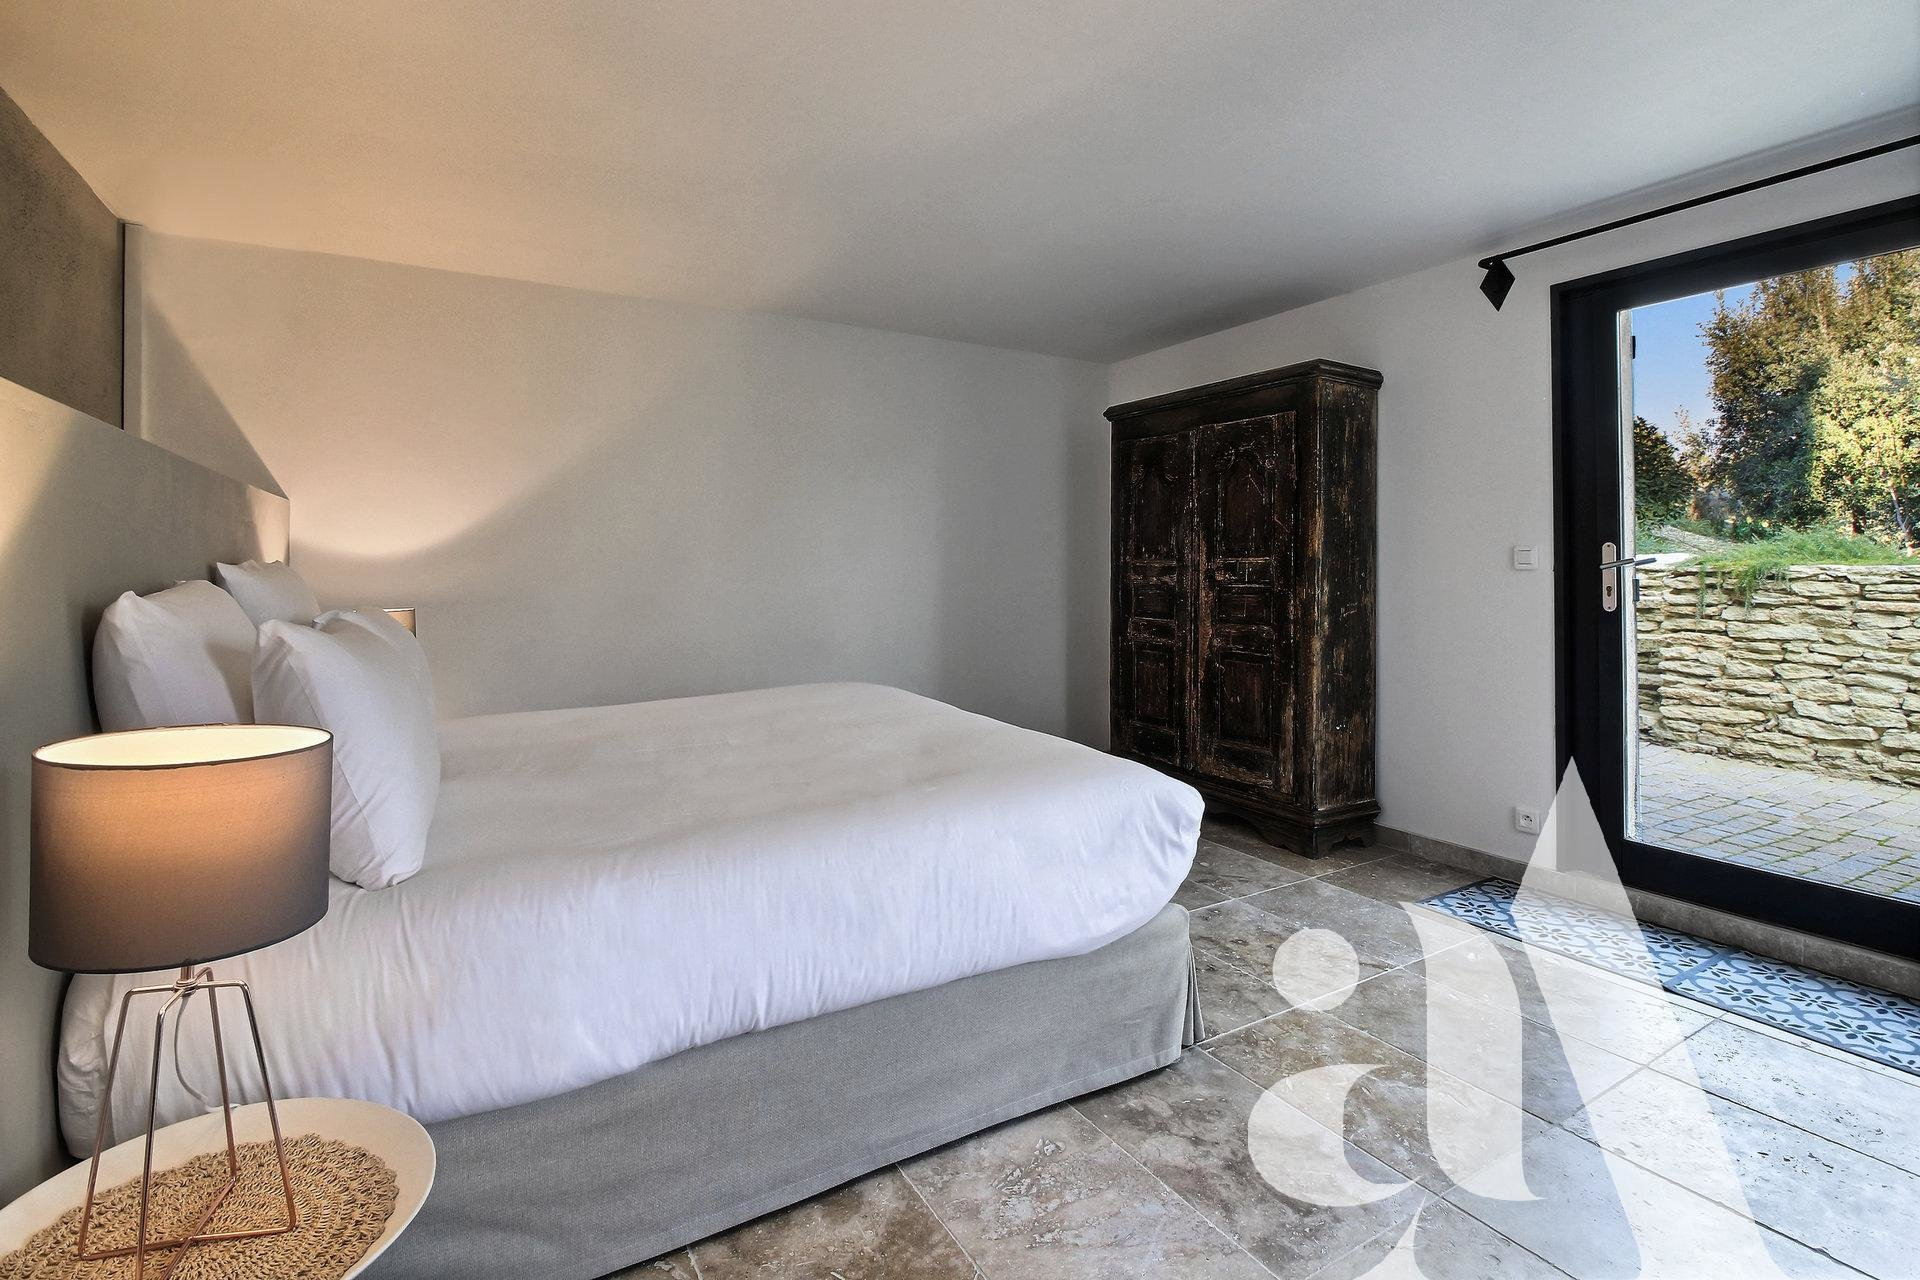 MAS D'OIKOS - CABRIERES - LUBERON - 4 chambres- 8 personnes